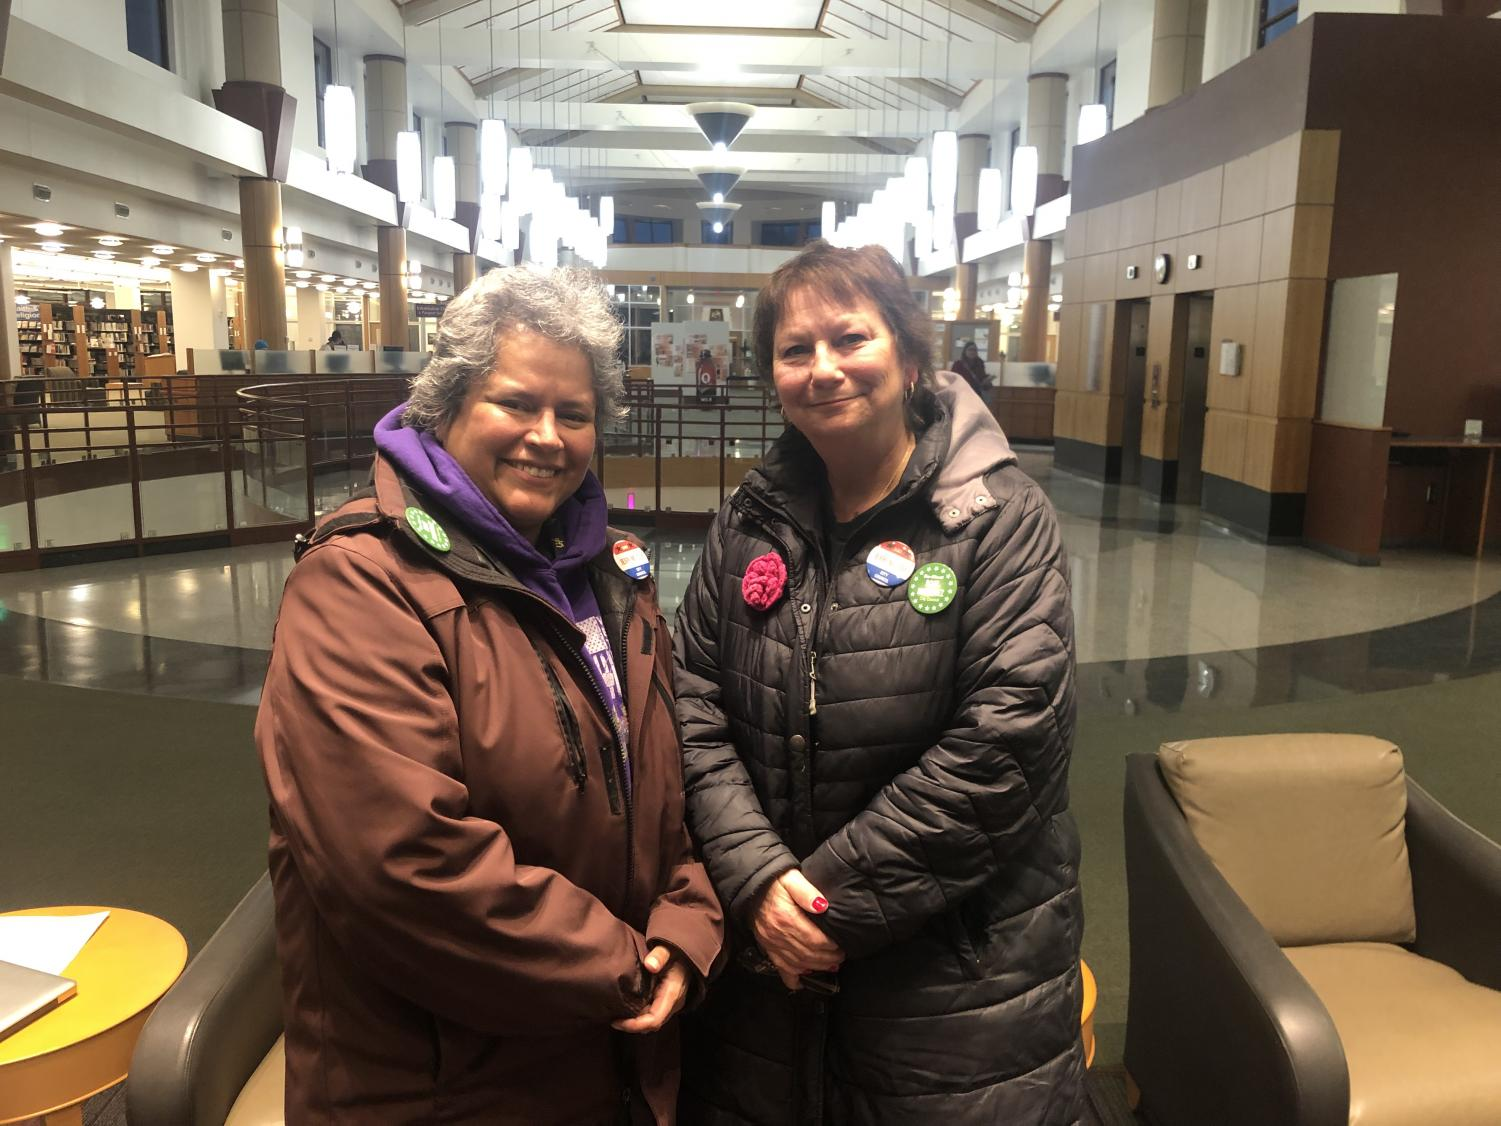 Councilwoman Rose Martinez, left, and council board candidate Jerri McCue, right, conveyed the reasons behind their candidacies for Elgin city council.